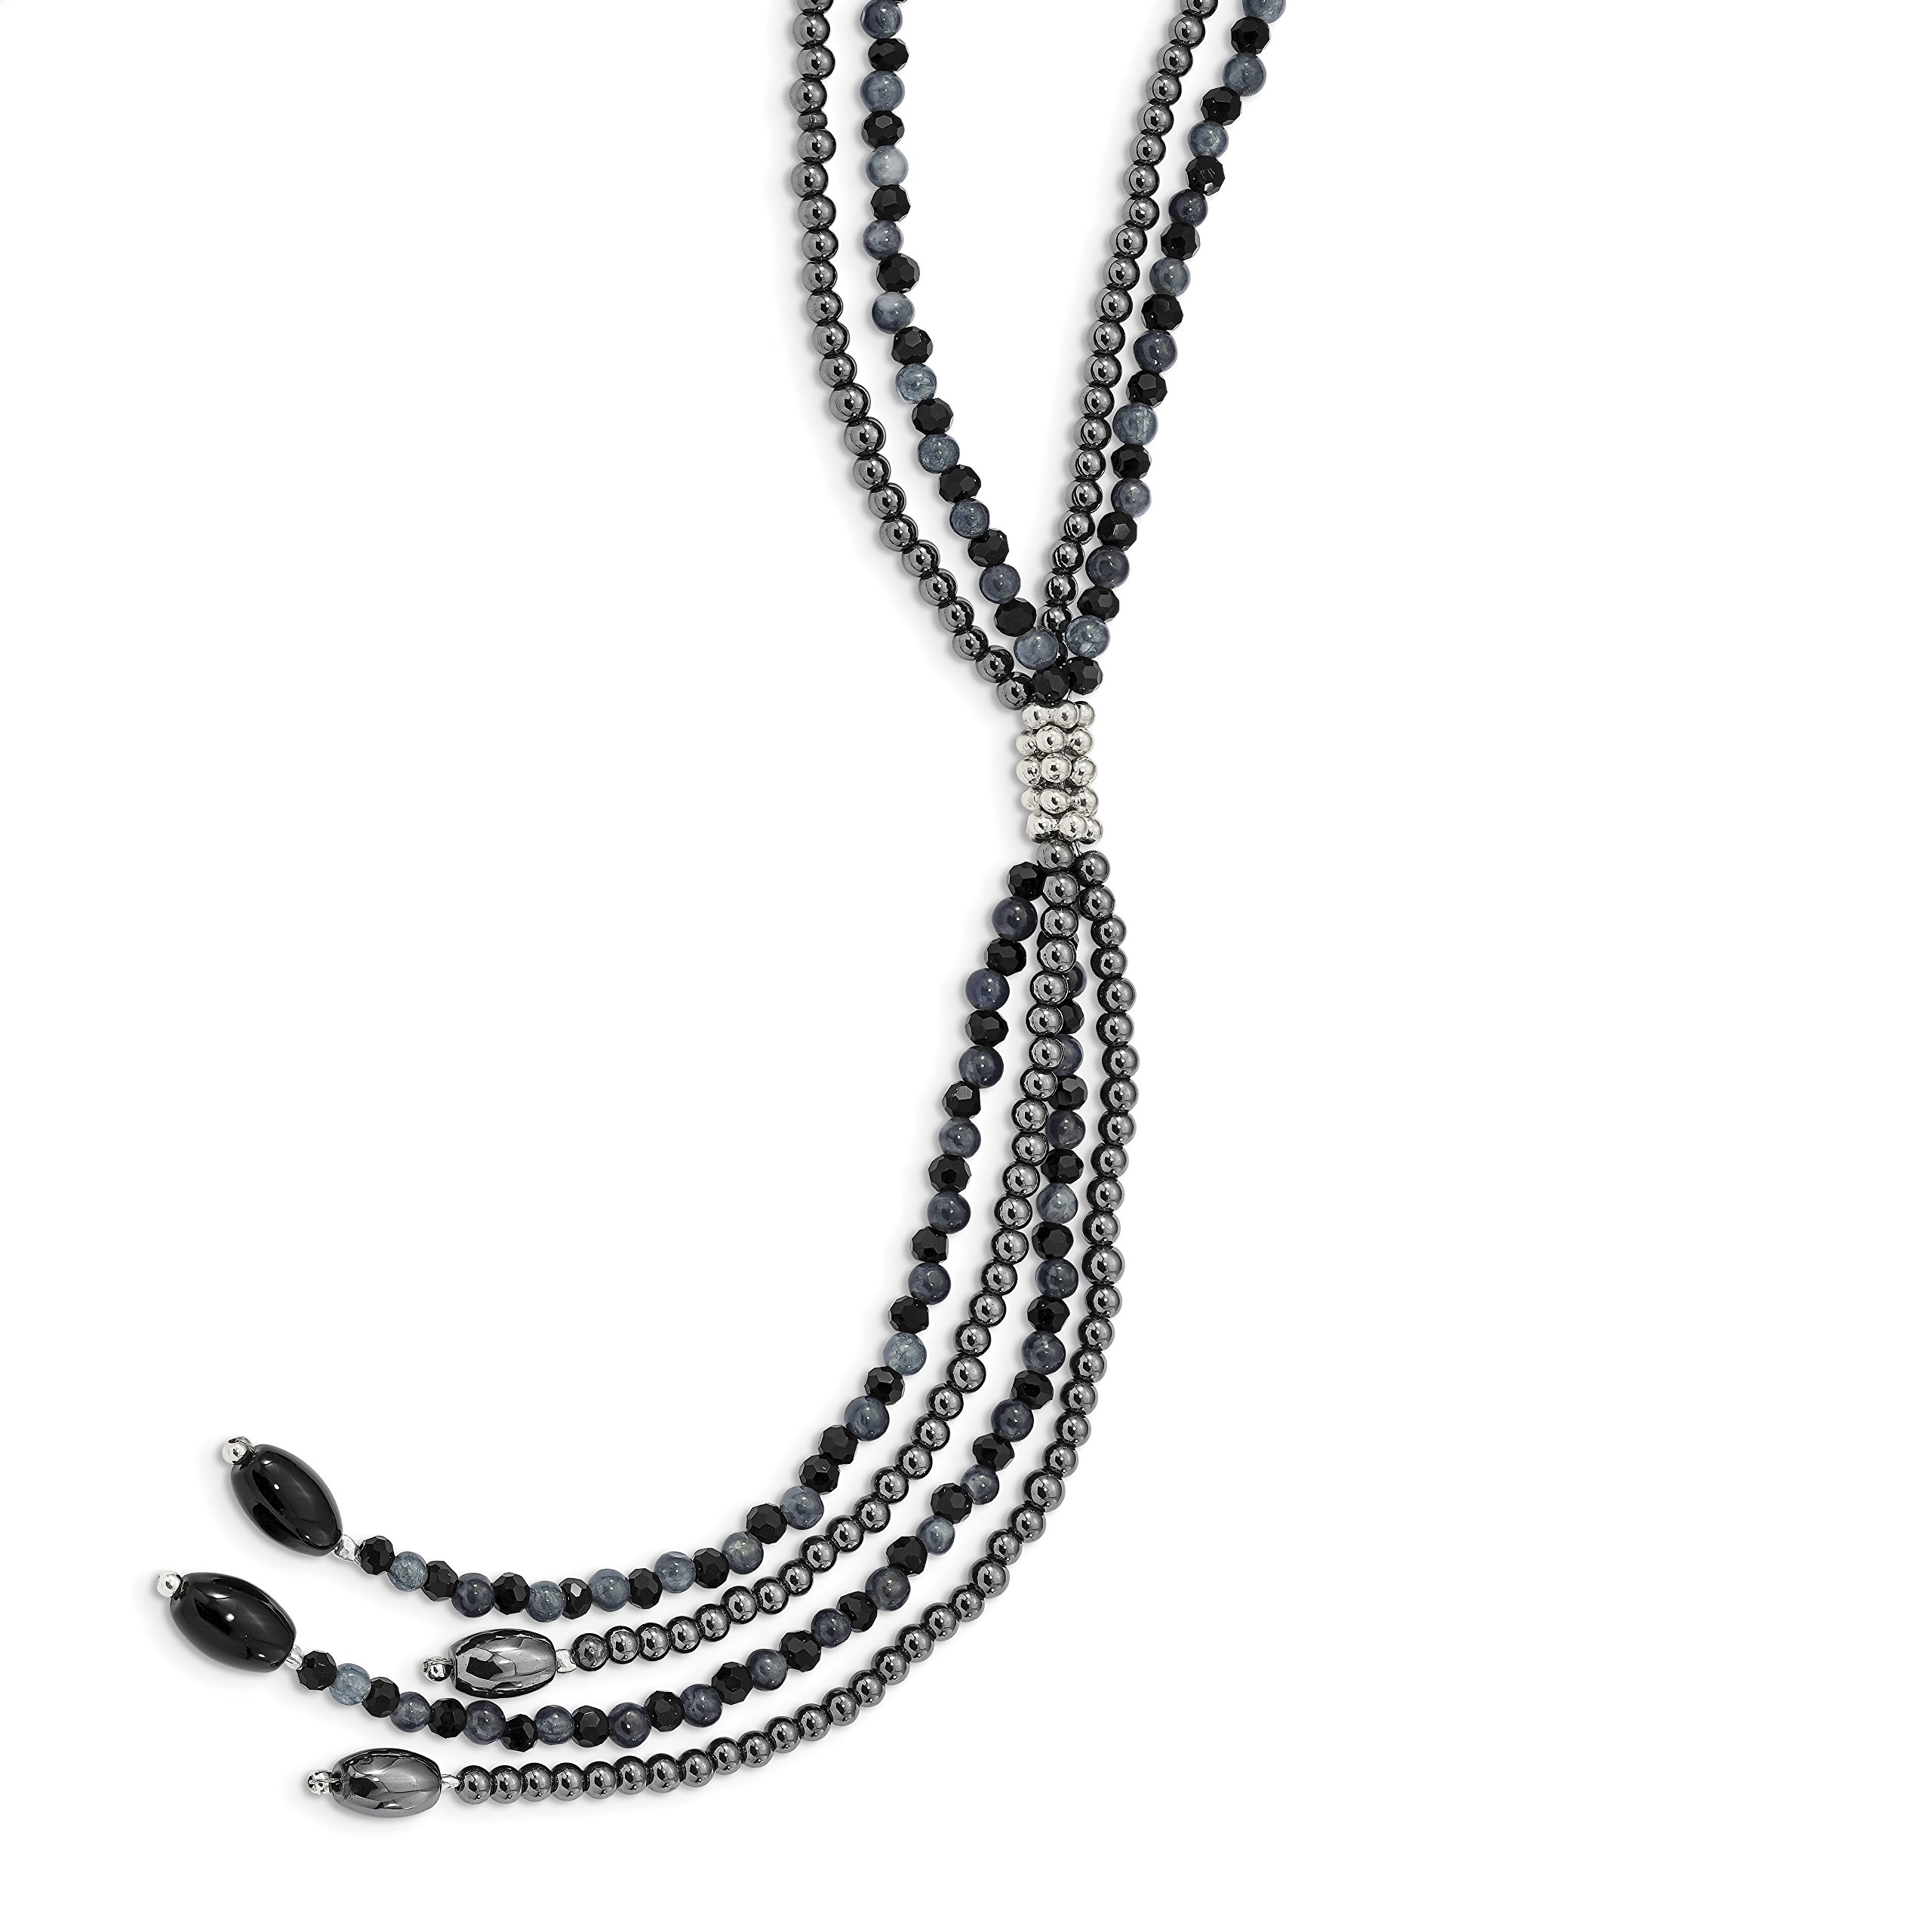 ICE CARATS 925 Sterling Silver Blkagate/blkcrys/hematite/grey Quartz 2 Strand 5 Inch Drop Chain Necklace Natural Stone Fine Jewelry Gift Set For Women Heart